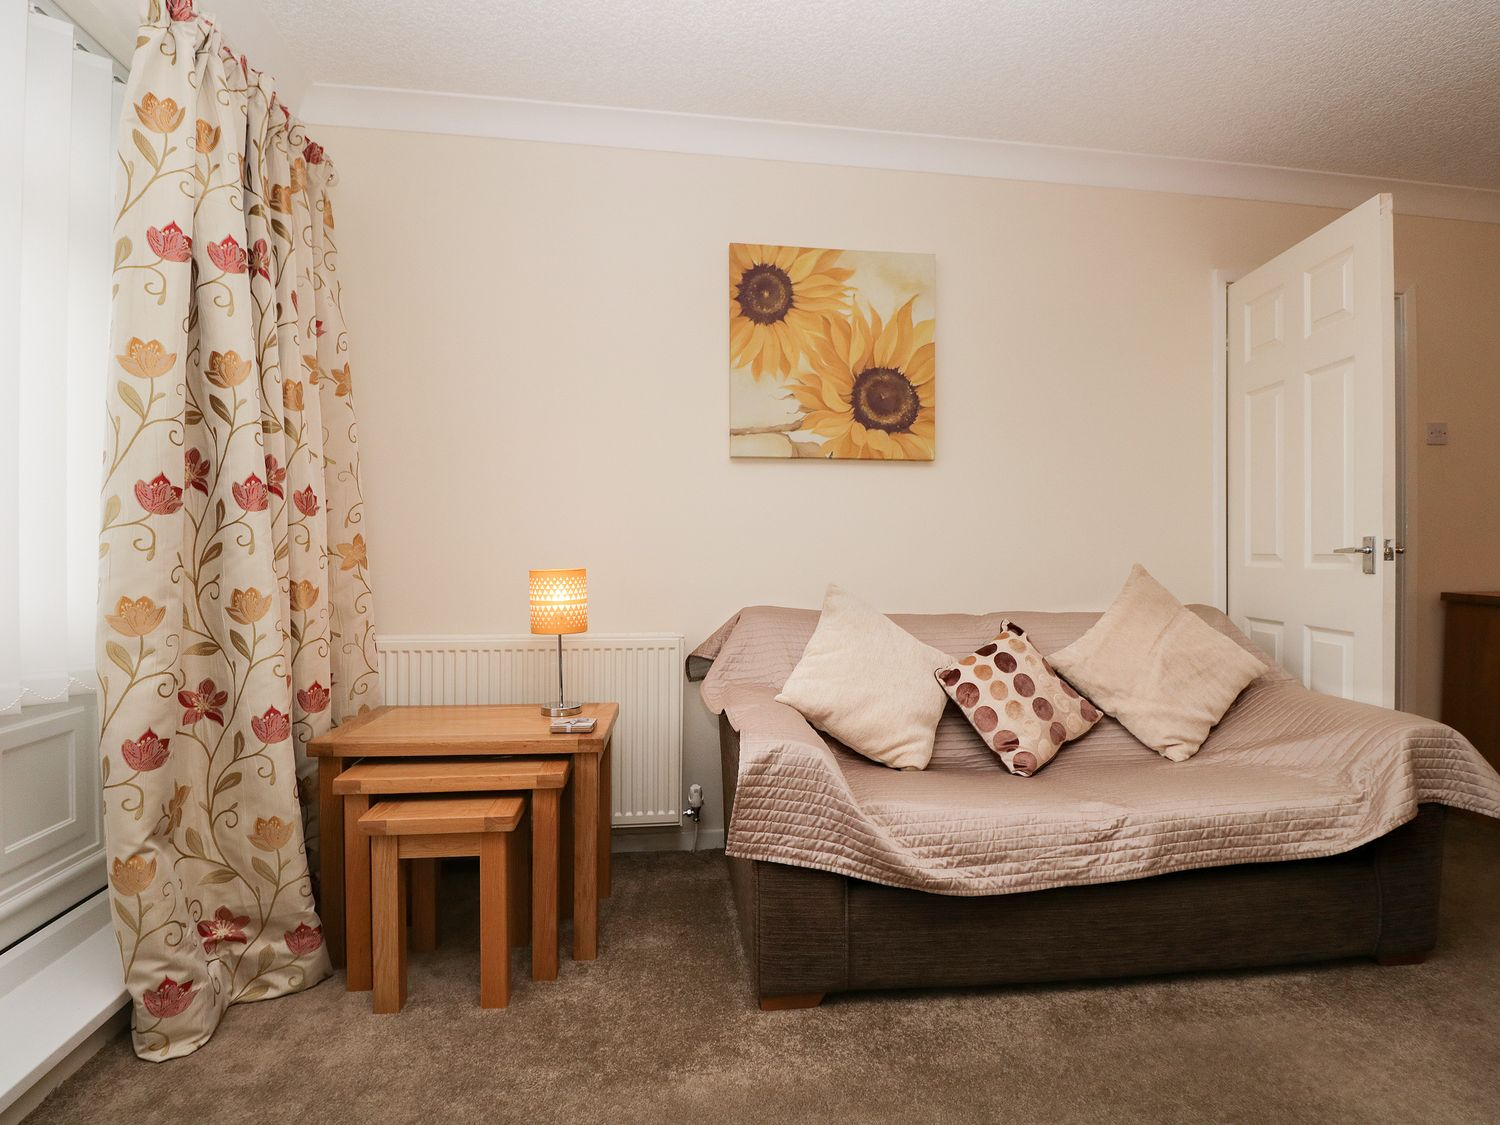 Travellers Rest in Blackpool - sleeps 4 people